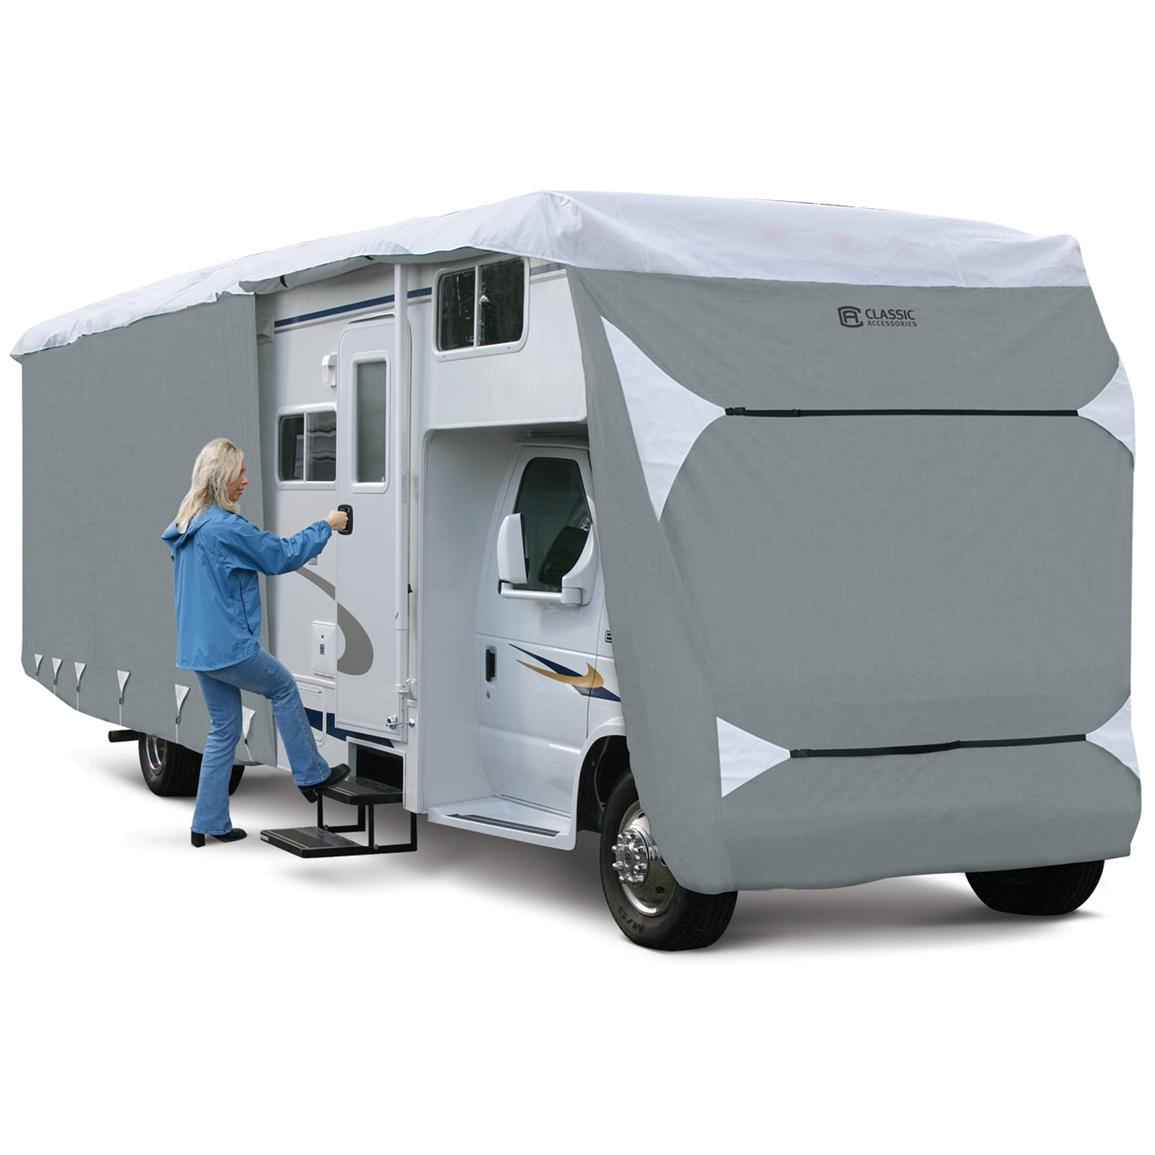 Classic Accessories™ PolyPro™ 3 Class C RV Covers